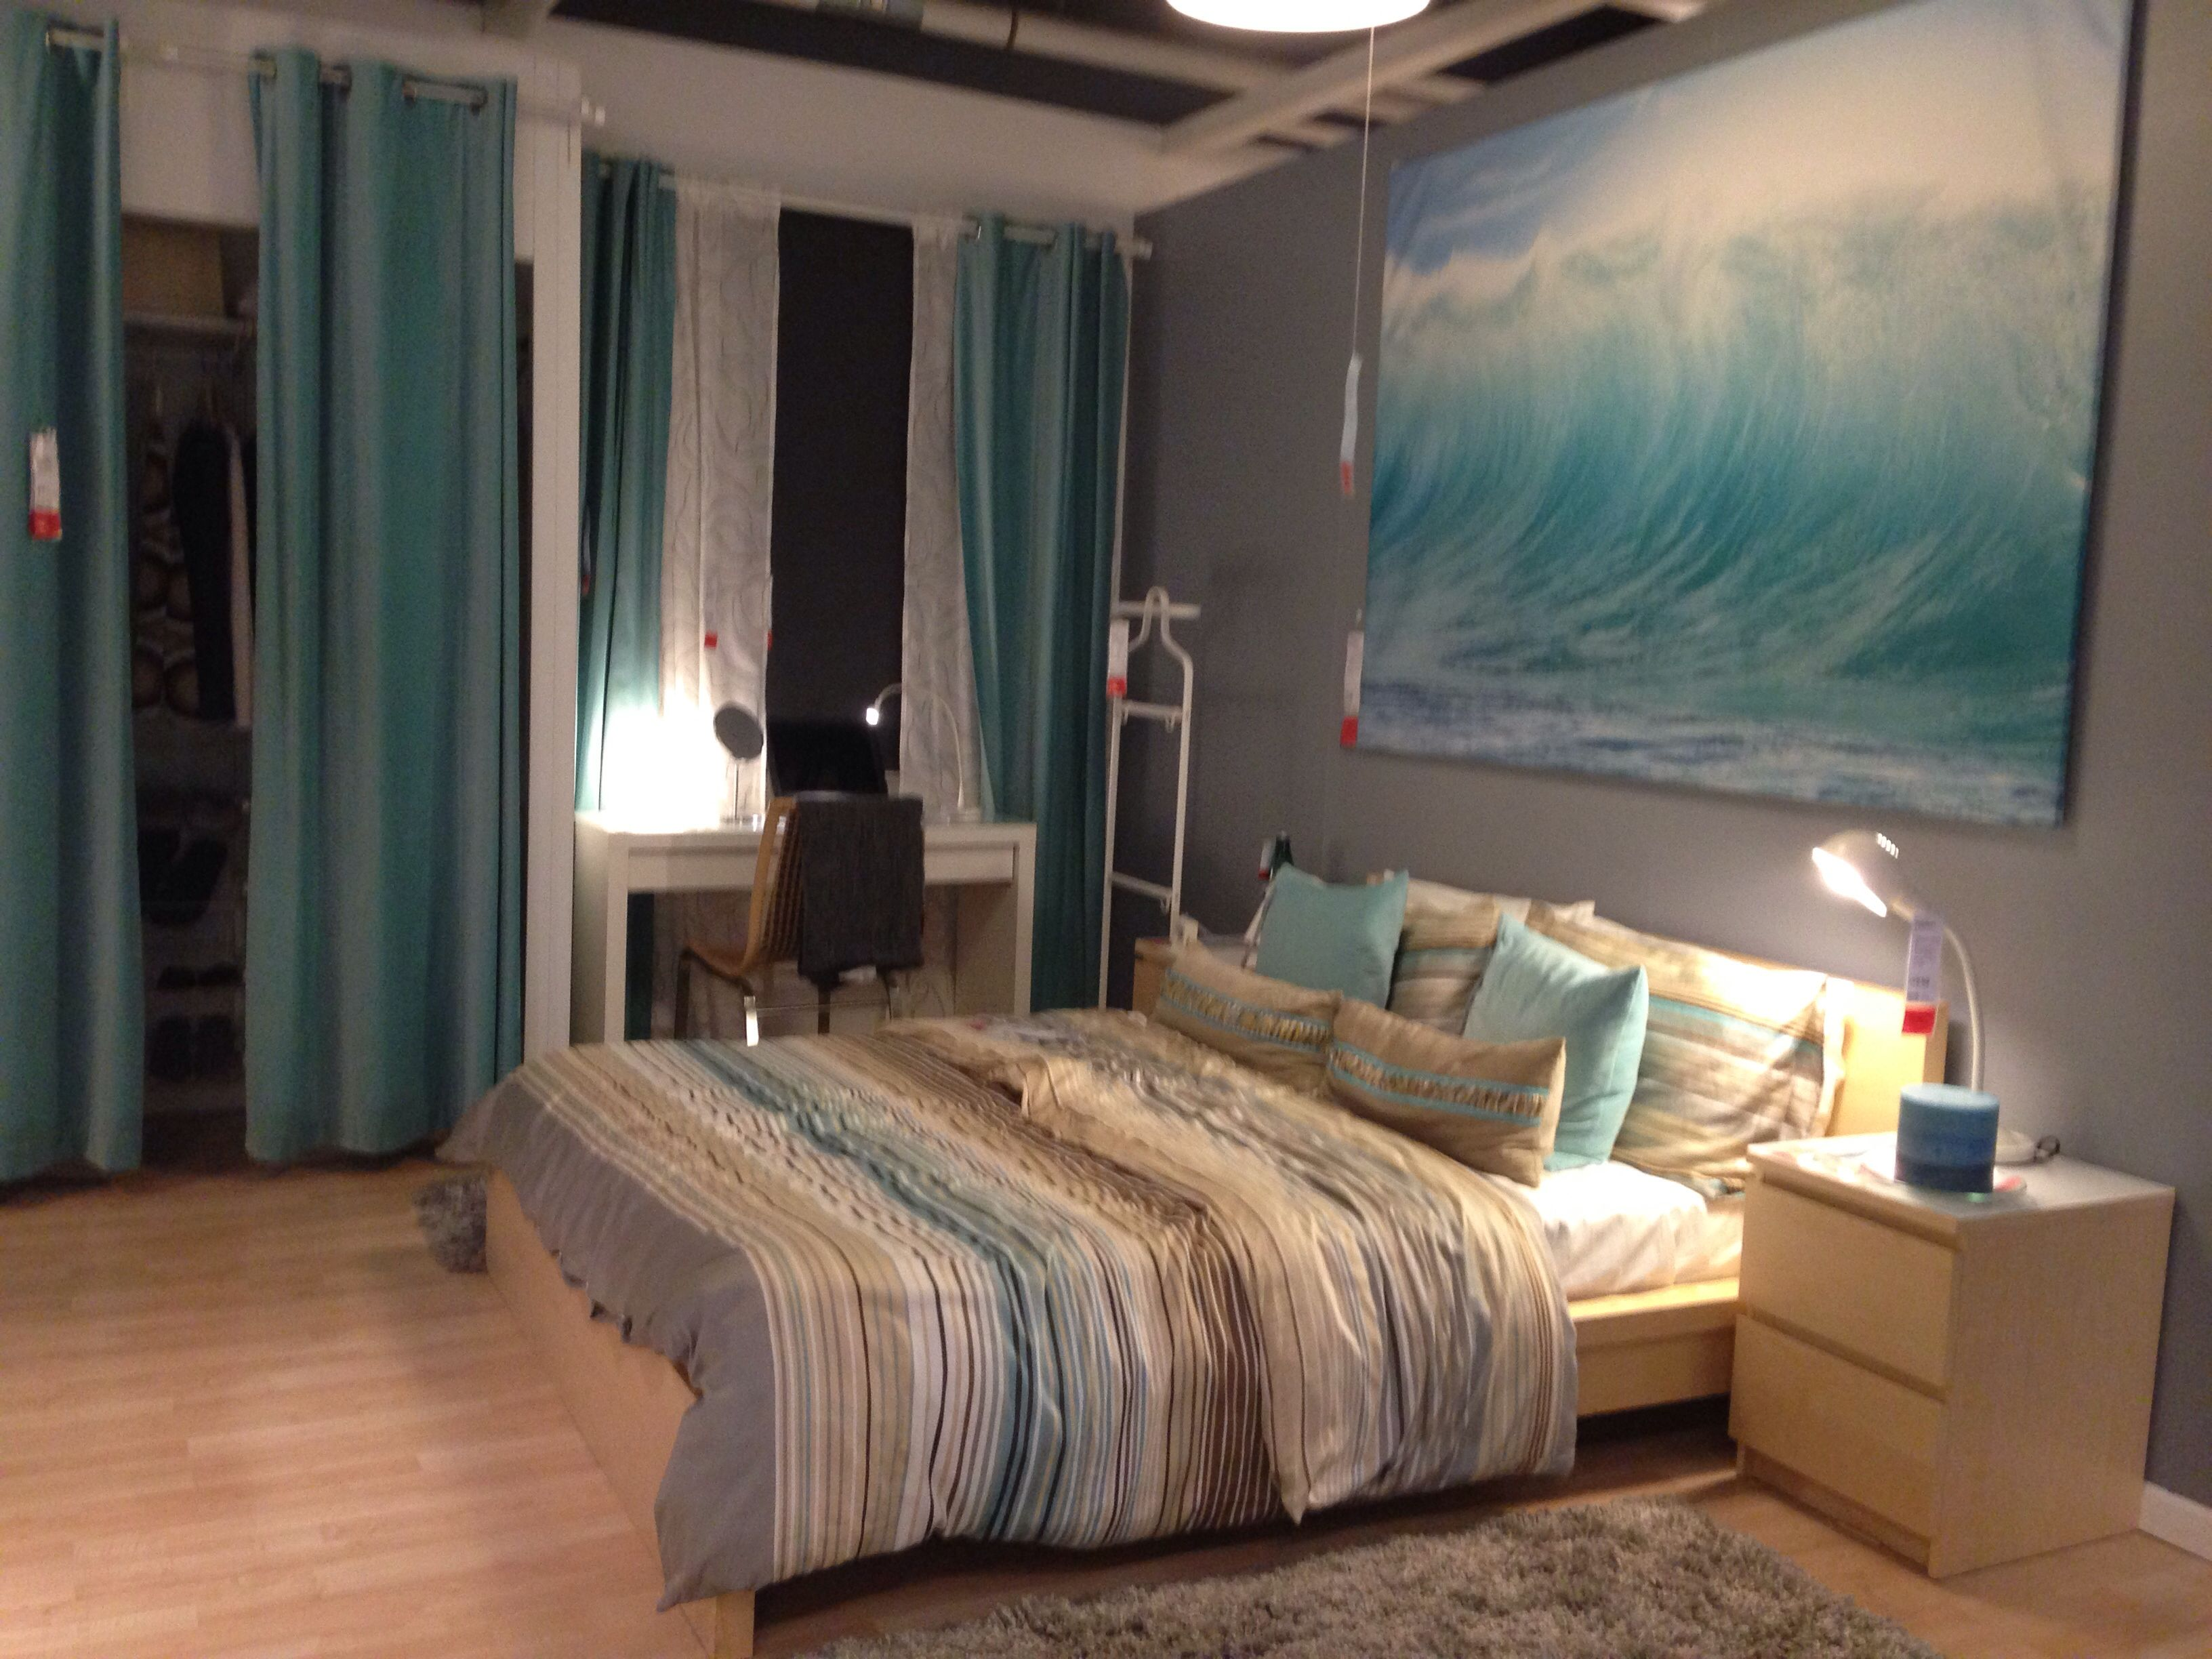 beach themed bedroom everything is sold at ikea love it - Ideas For Bedroom Decorating Themes